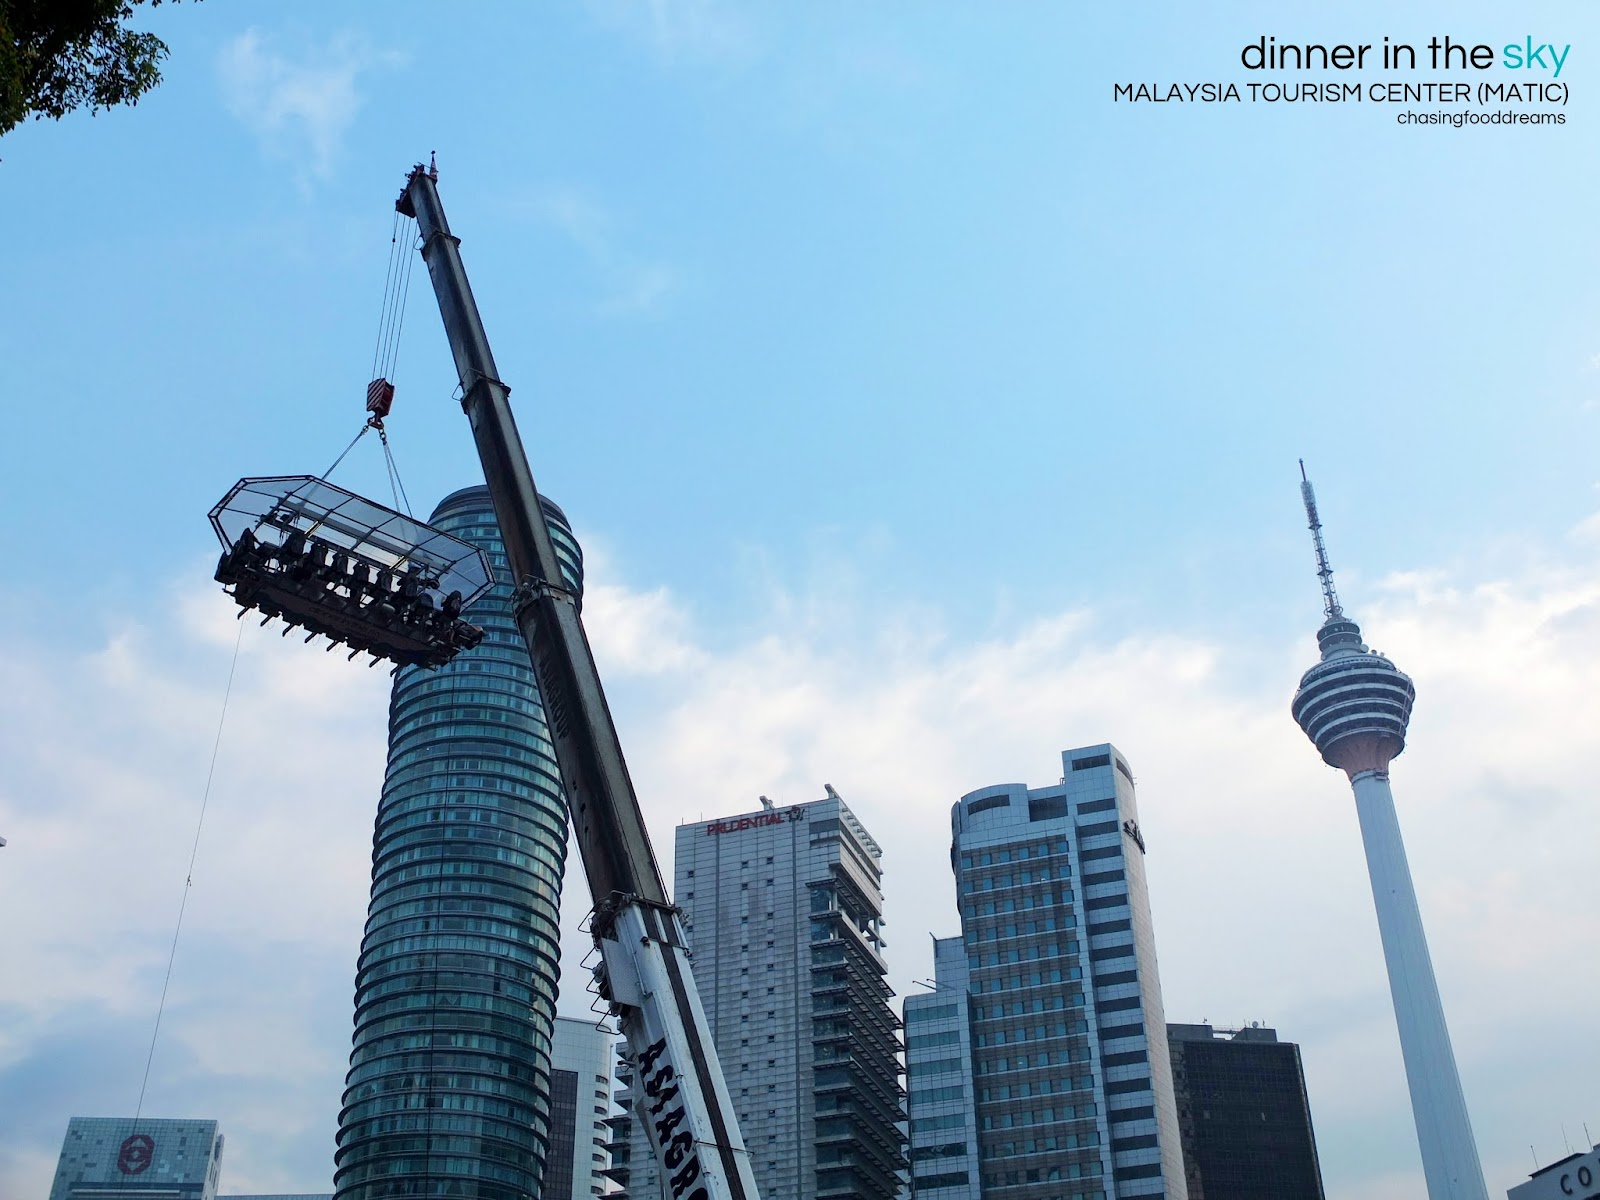 CHASING FOOD DREAMS: Dinner In The Sky @ Malaysia Tourism Center (MATIC)